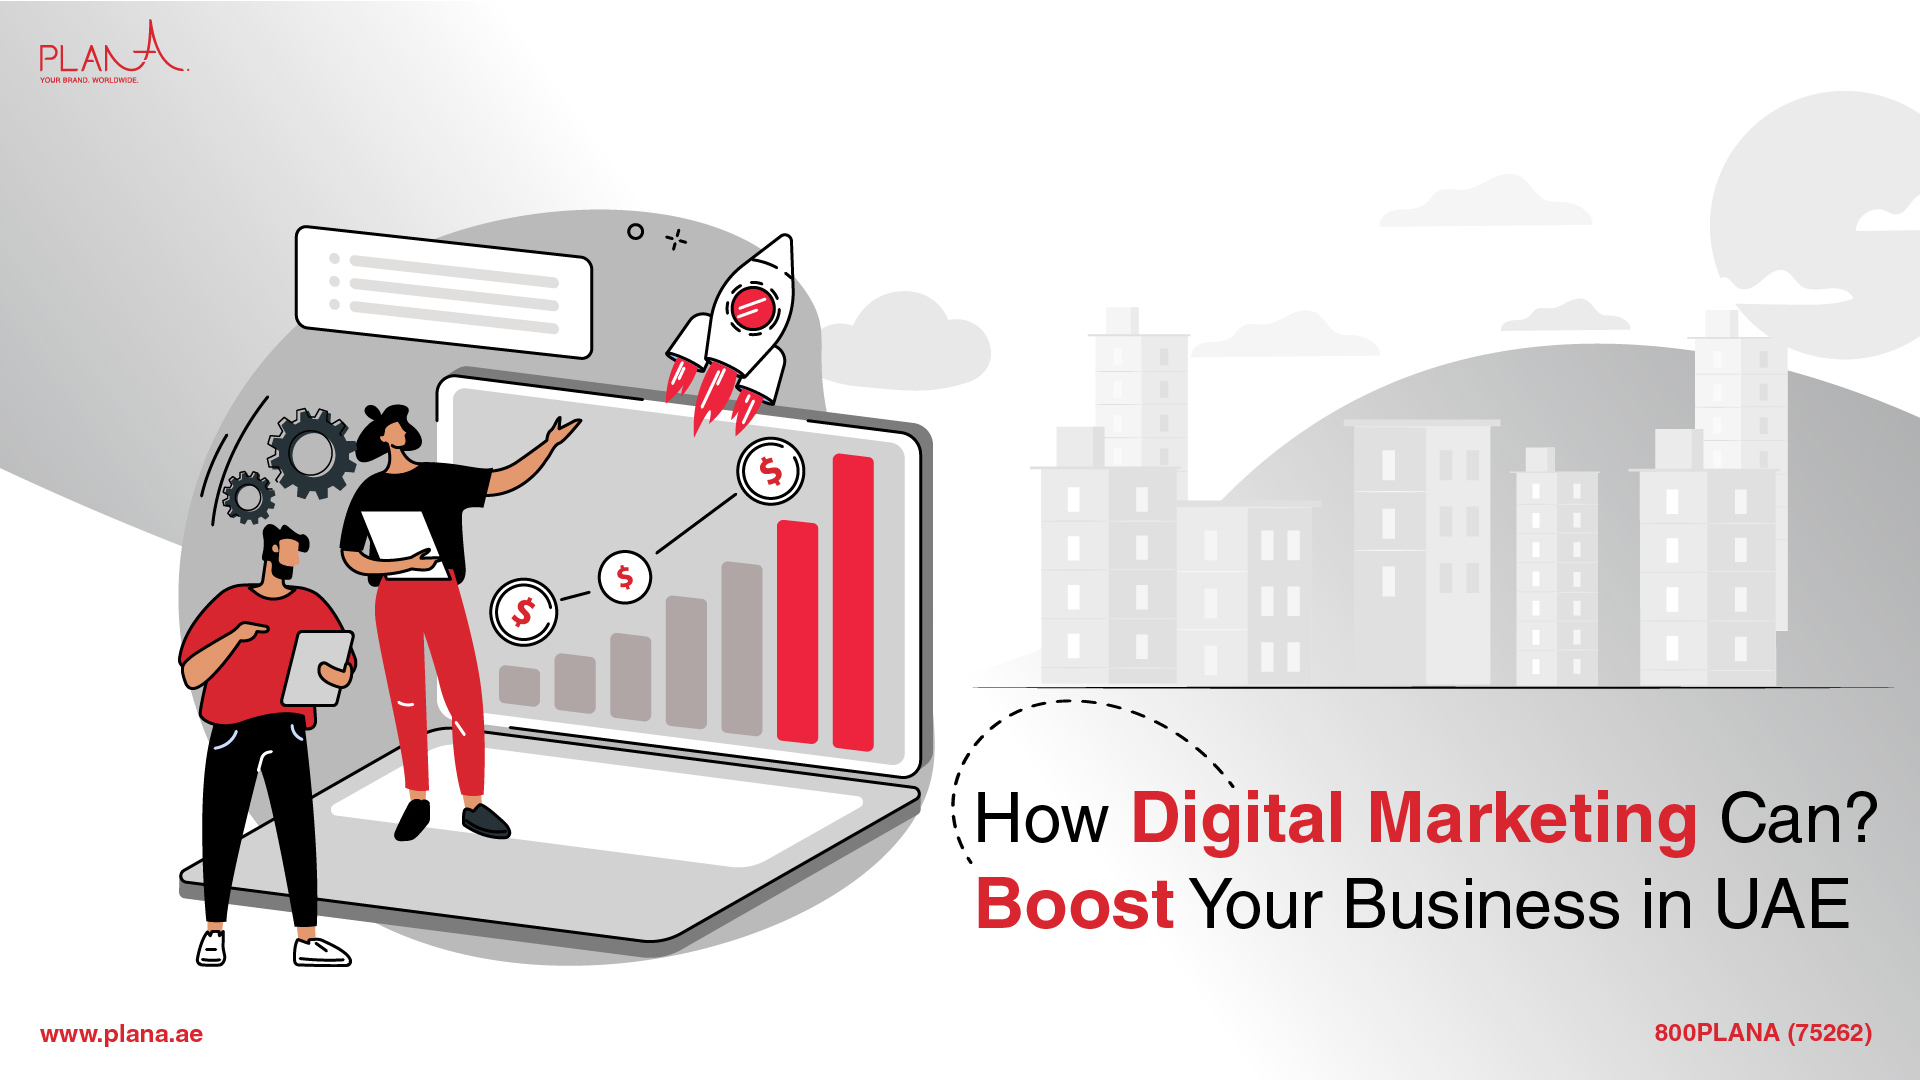 How Digital Marketing Can Boost Your Business in UAE?